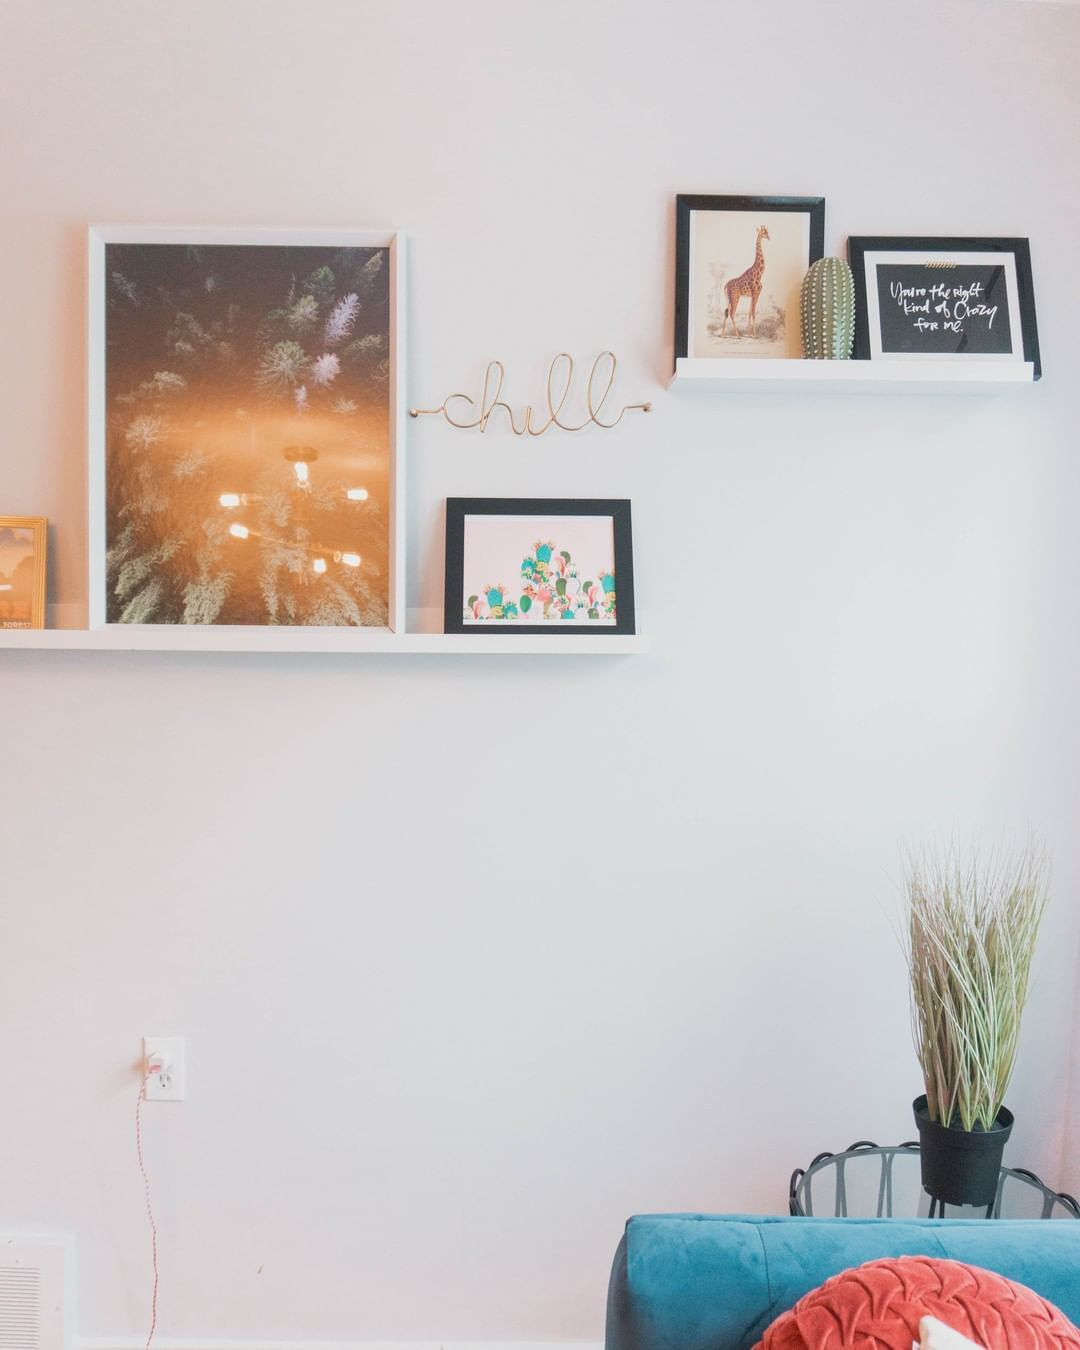 Picture ledges and a few art prints can make a huge difference! By using two picture ledges ($16.99 + $9.99 @IKEACanada ), you can easily swap out prints whenever the seasons change! You can also DIY that